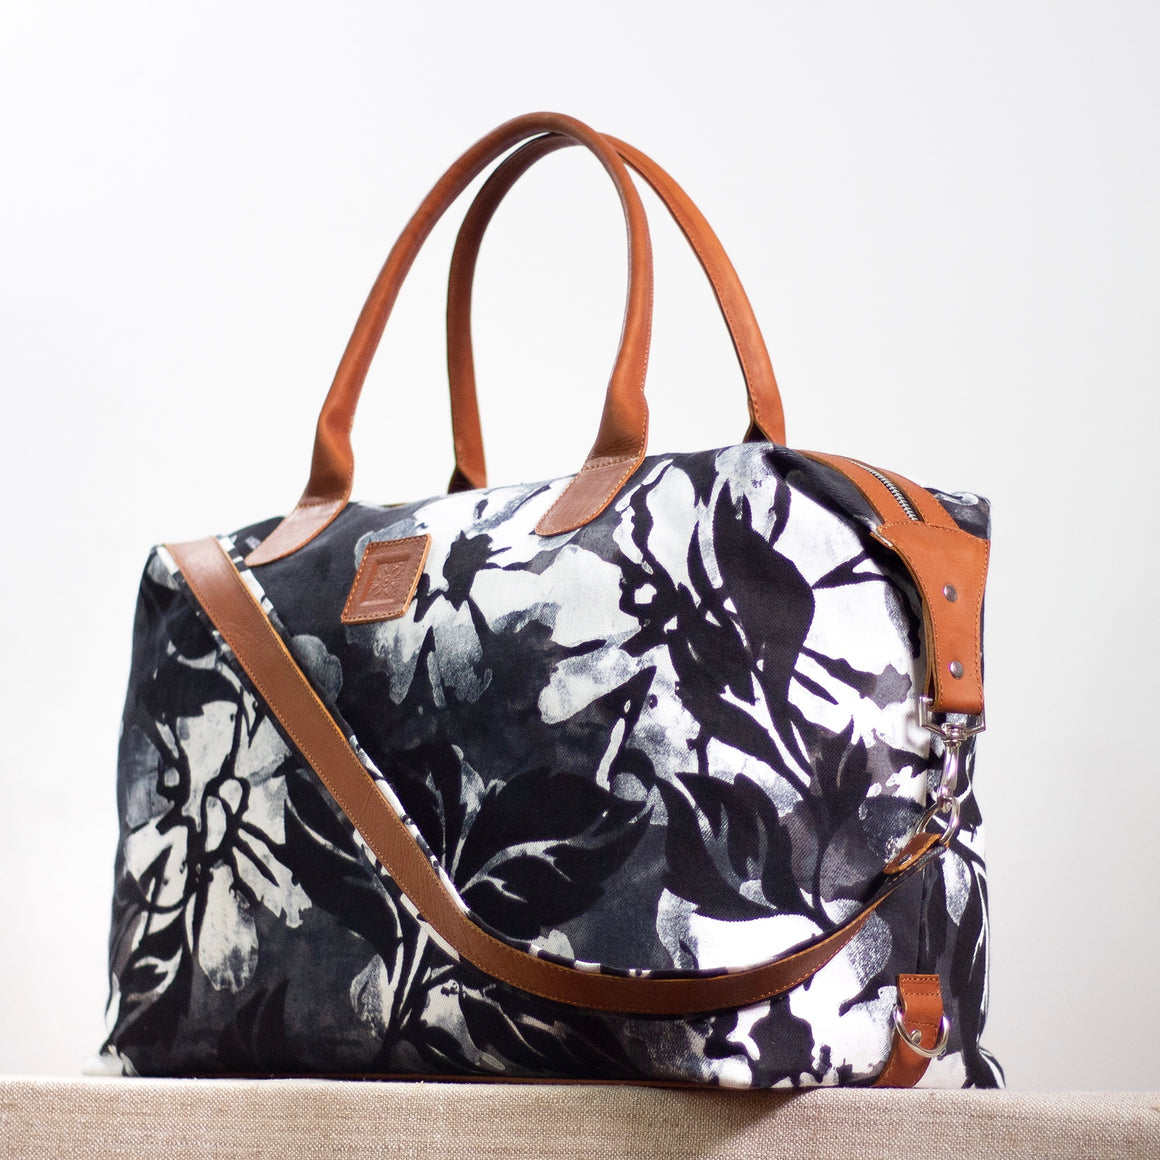 Intrepid Traveler - Convertible Tote - Hula Nights